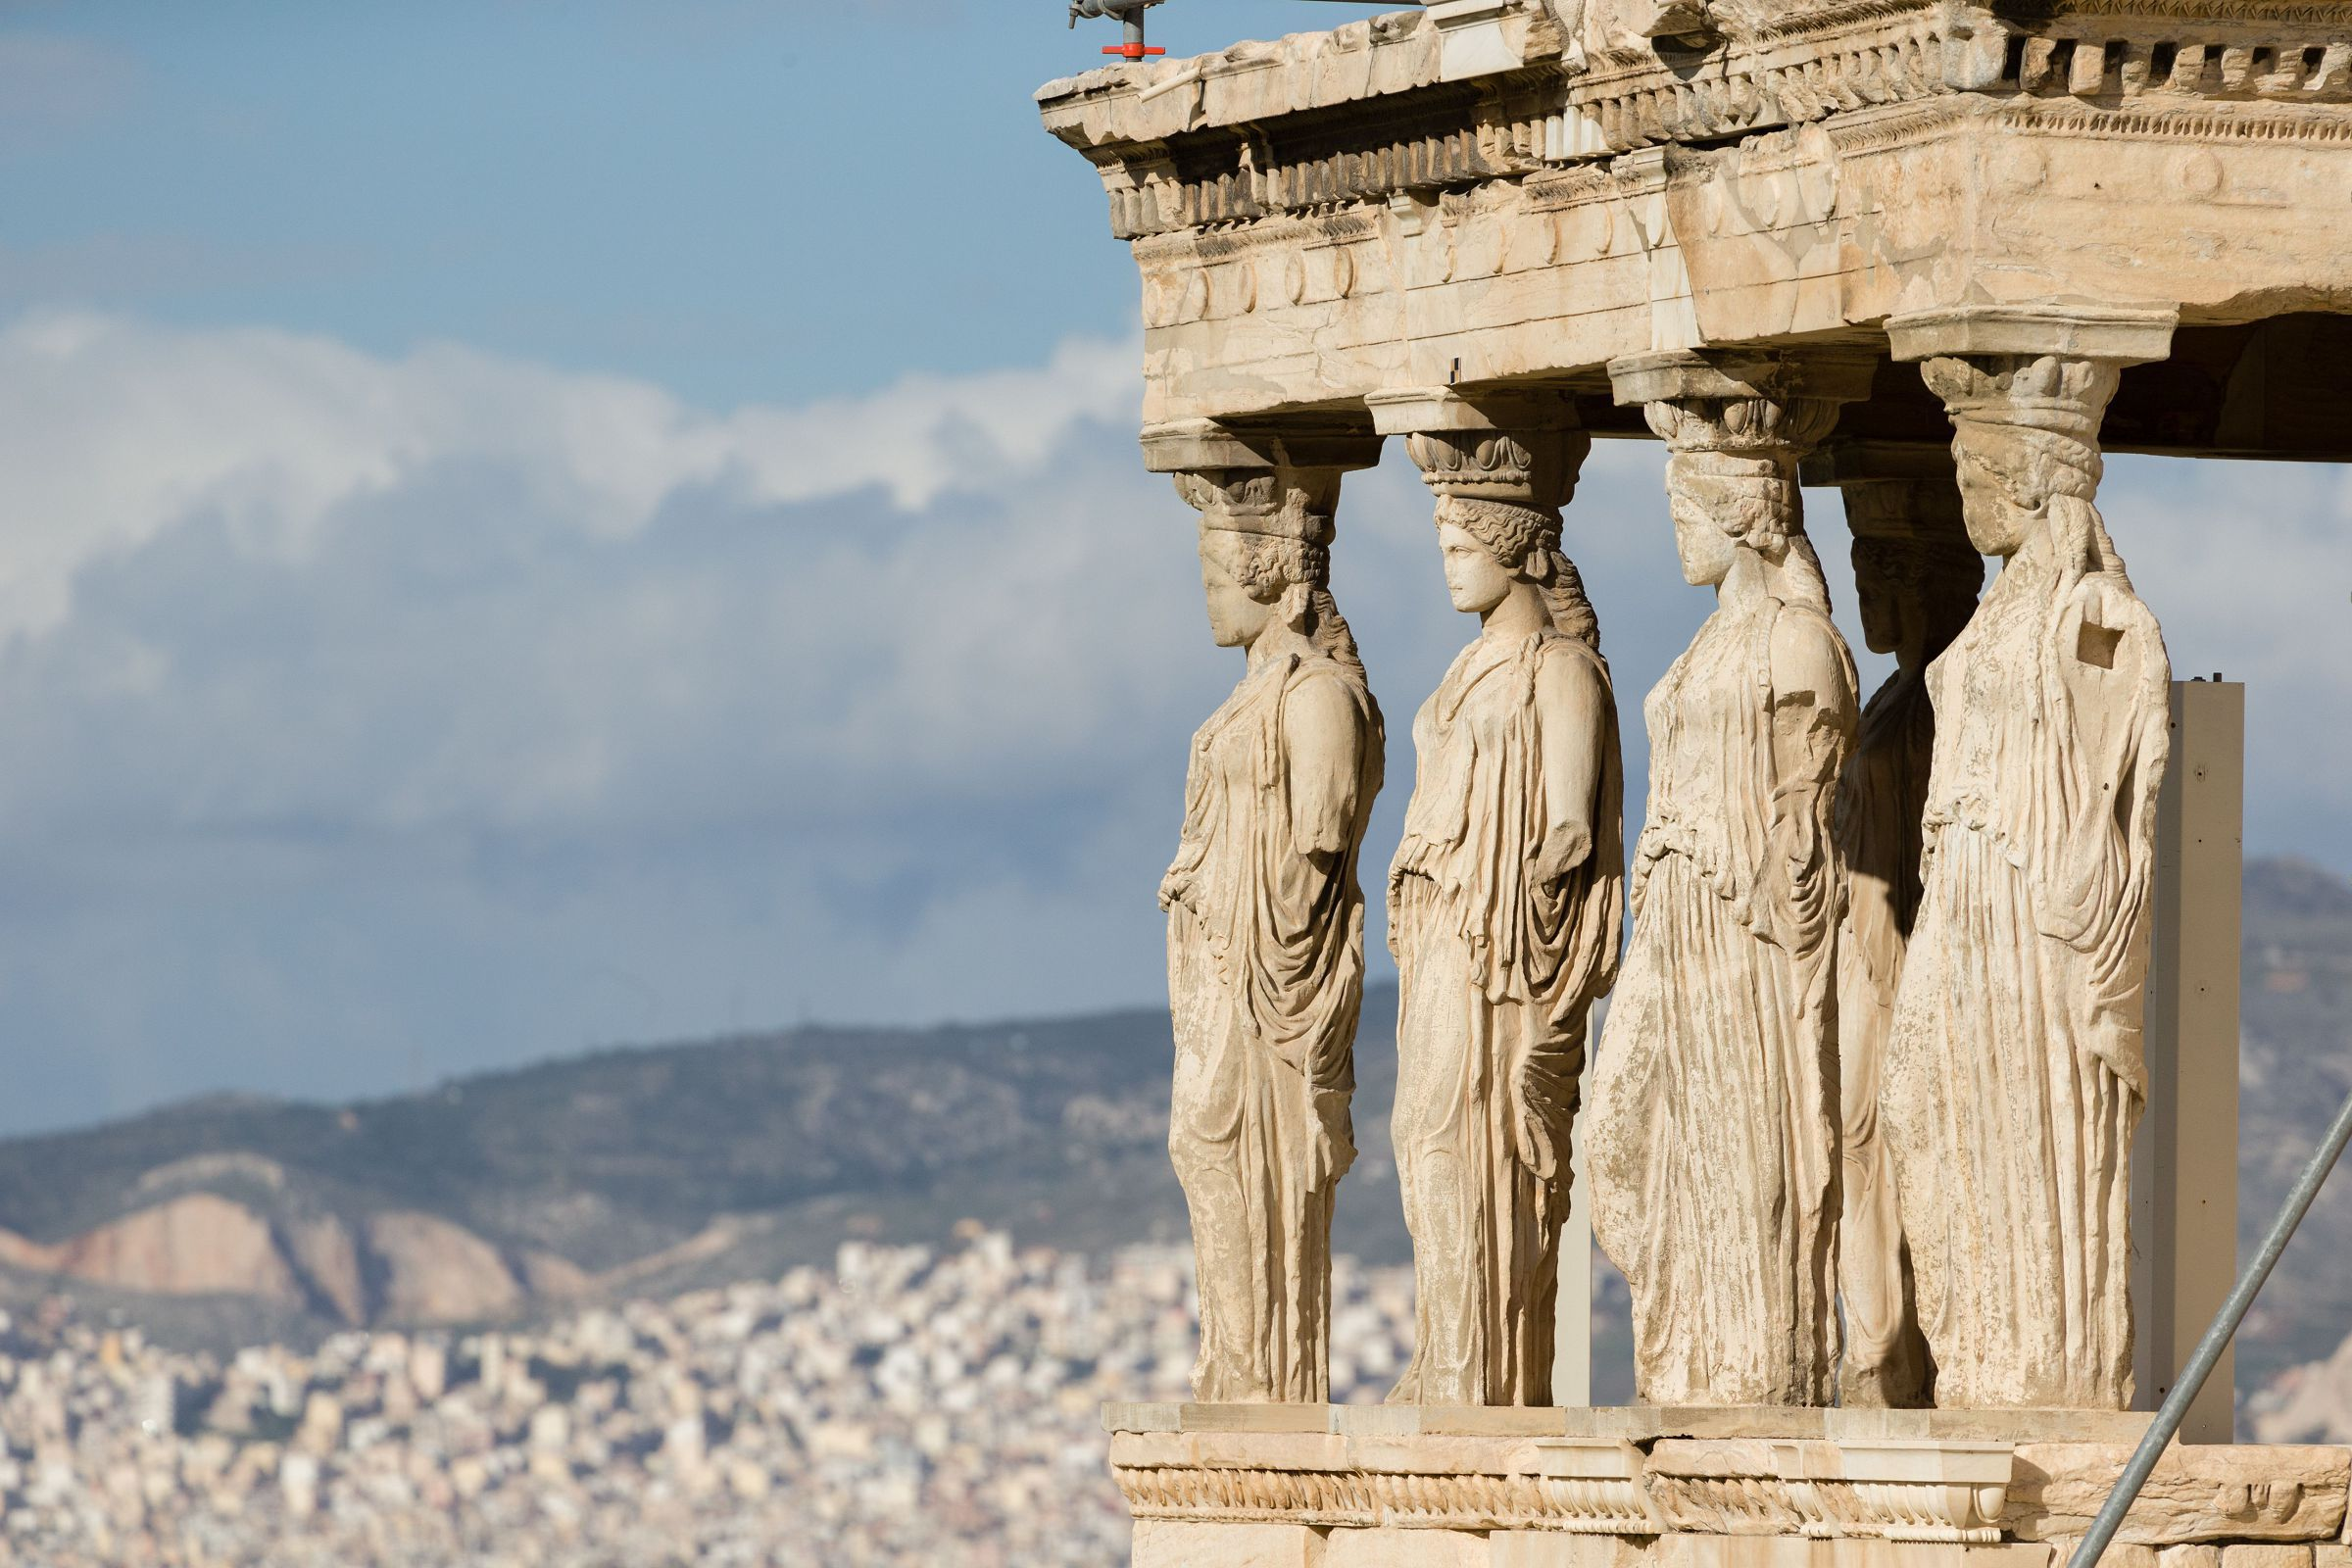 Acropolis, The Famous Erechtheum Temple